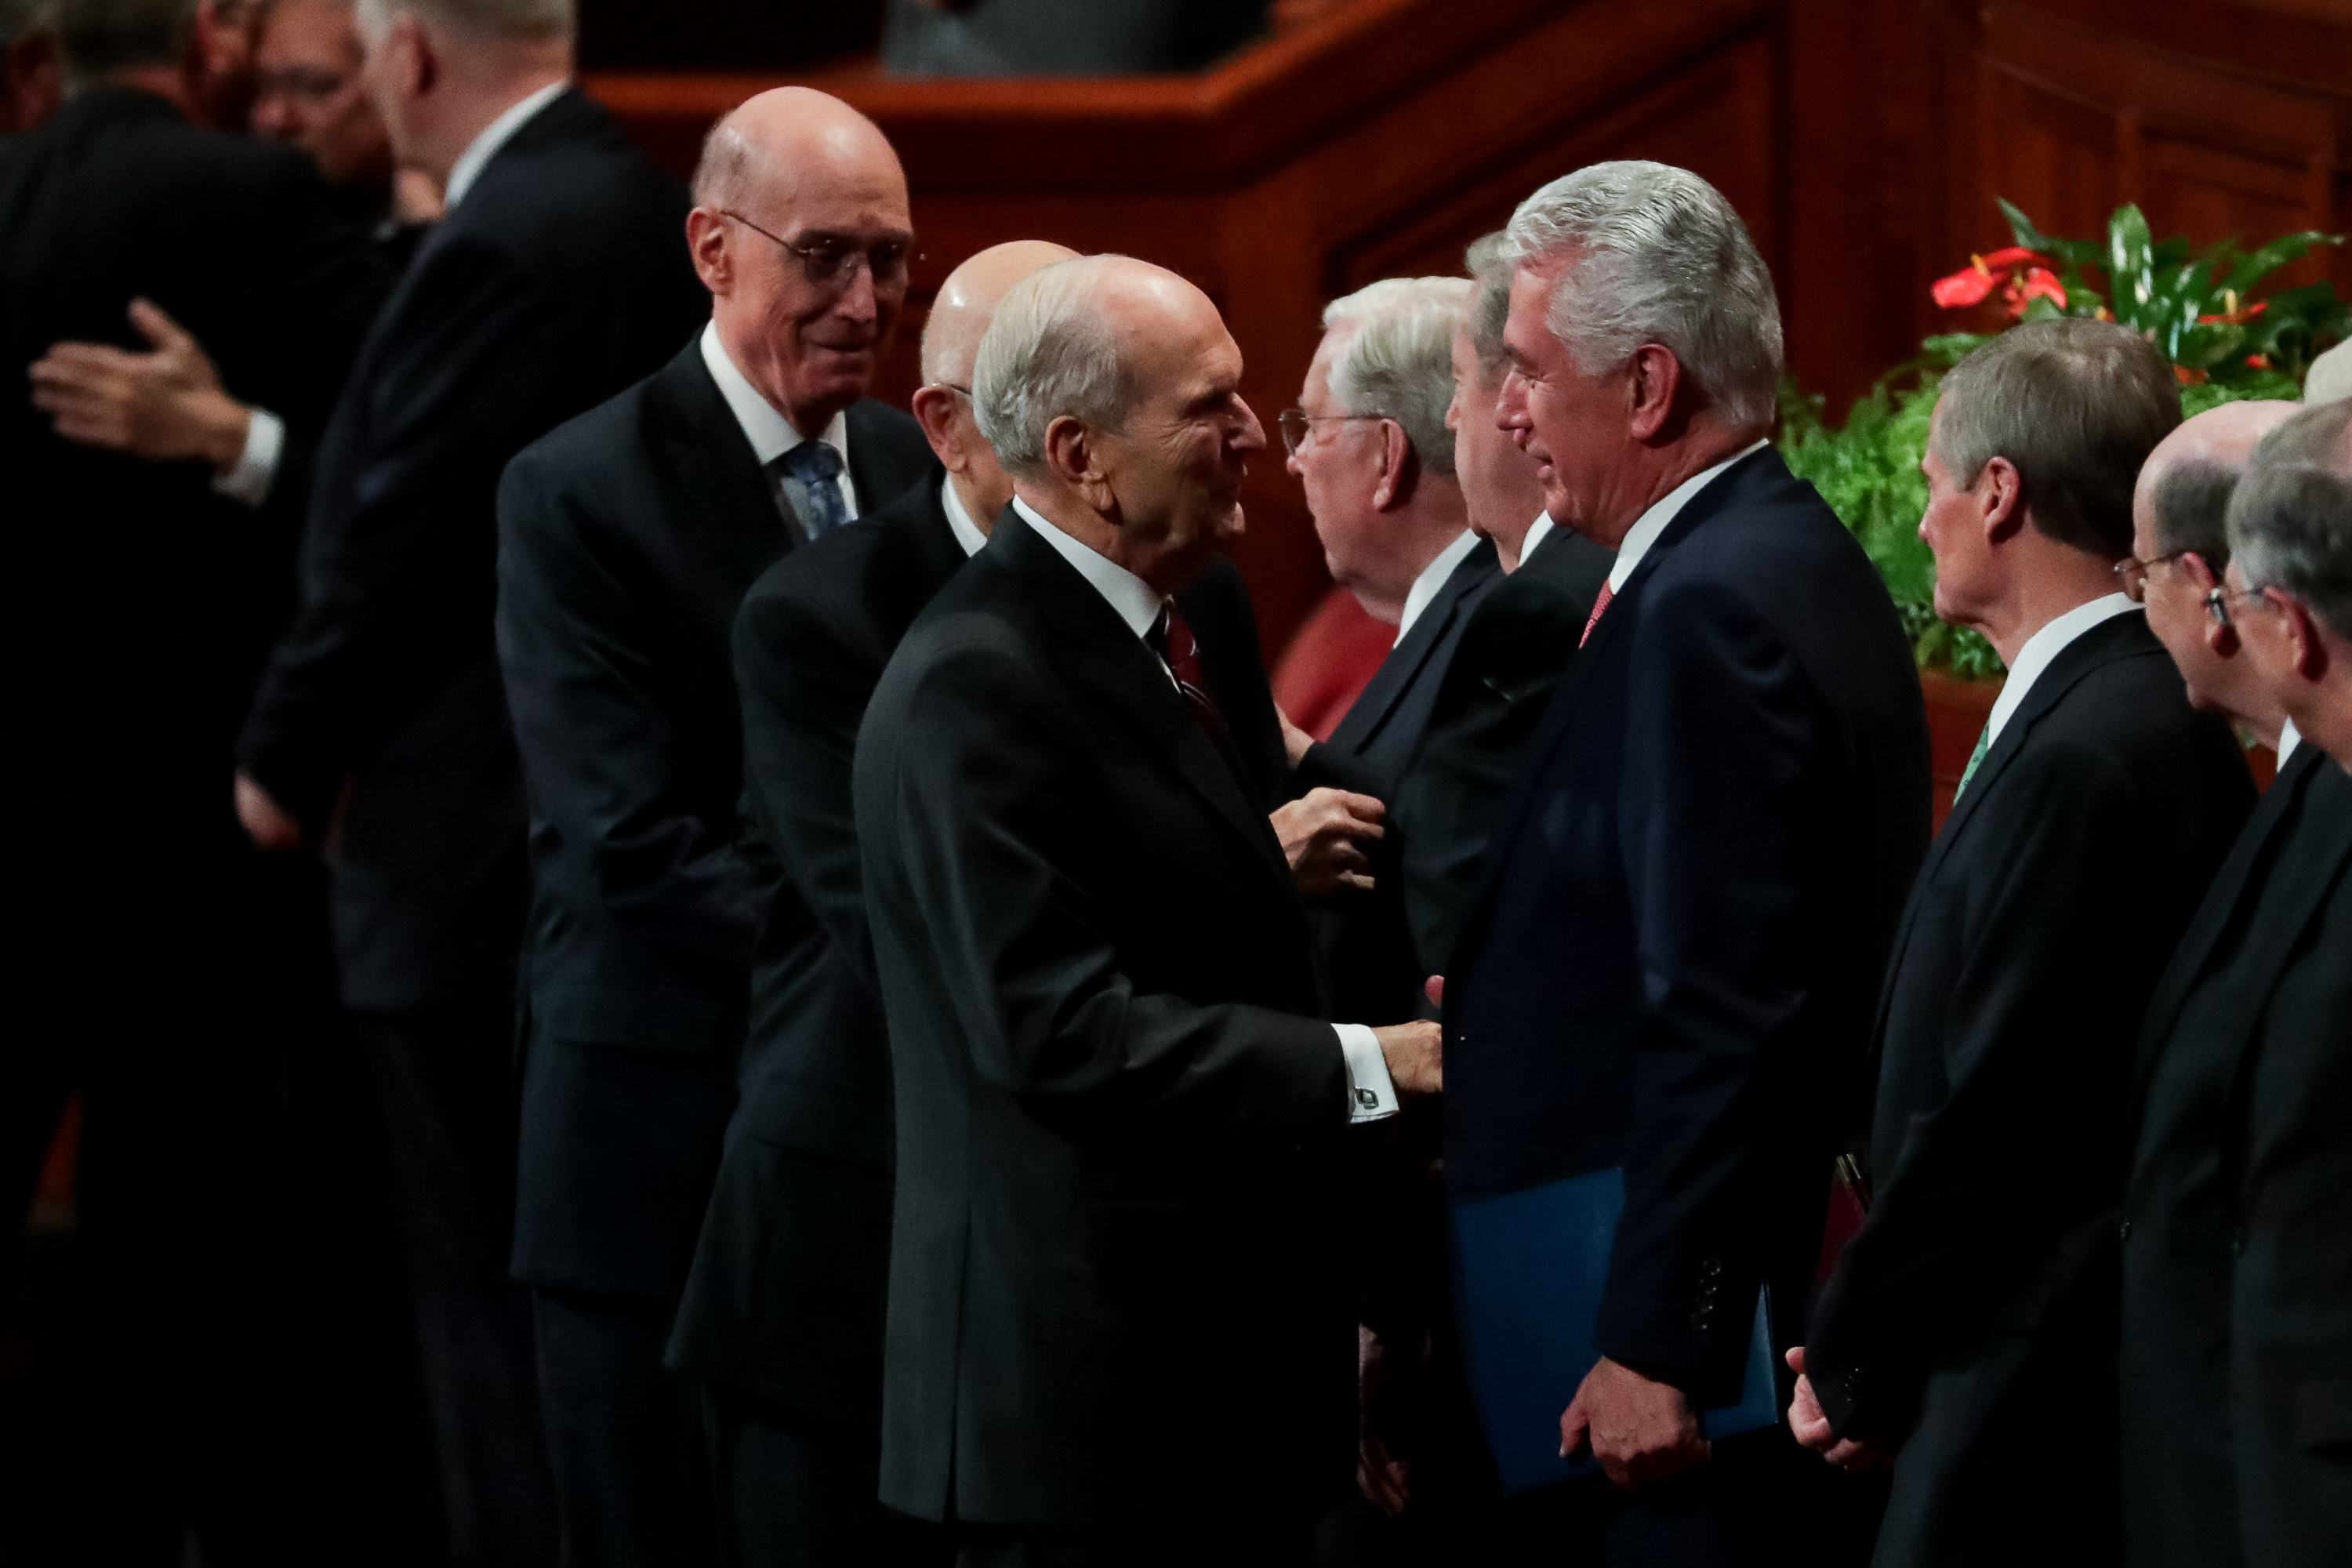 President Russell M. Nelson speaks to Elder Dieter F. Uchtdorf, of the Quorum of the Twelve Apostles, at the end of the Saturday afternoon session of the 188th Semiannual General Conference of The Church of Jesus Christ of Latter-day Saints in the Conference Center in Salt Lake City on Saturday, Oct. 6, 2018.